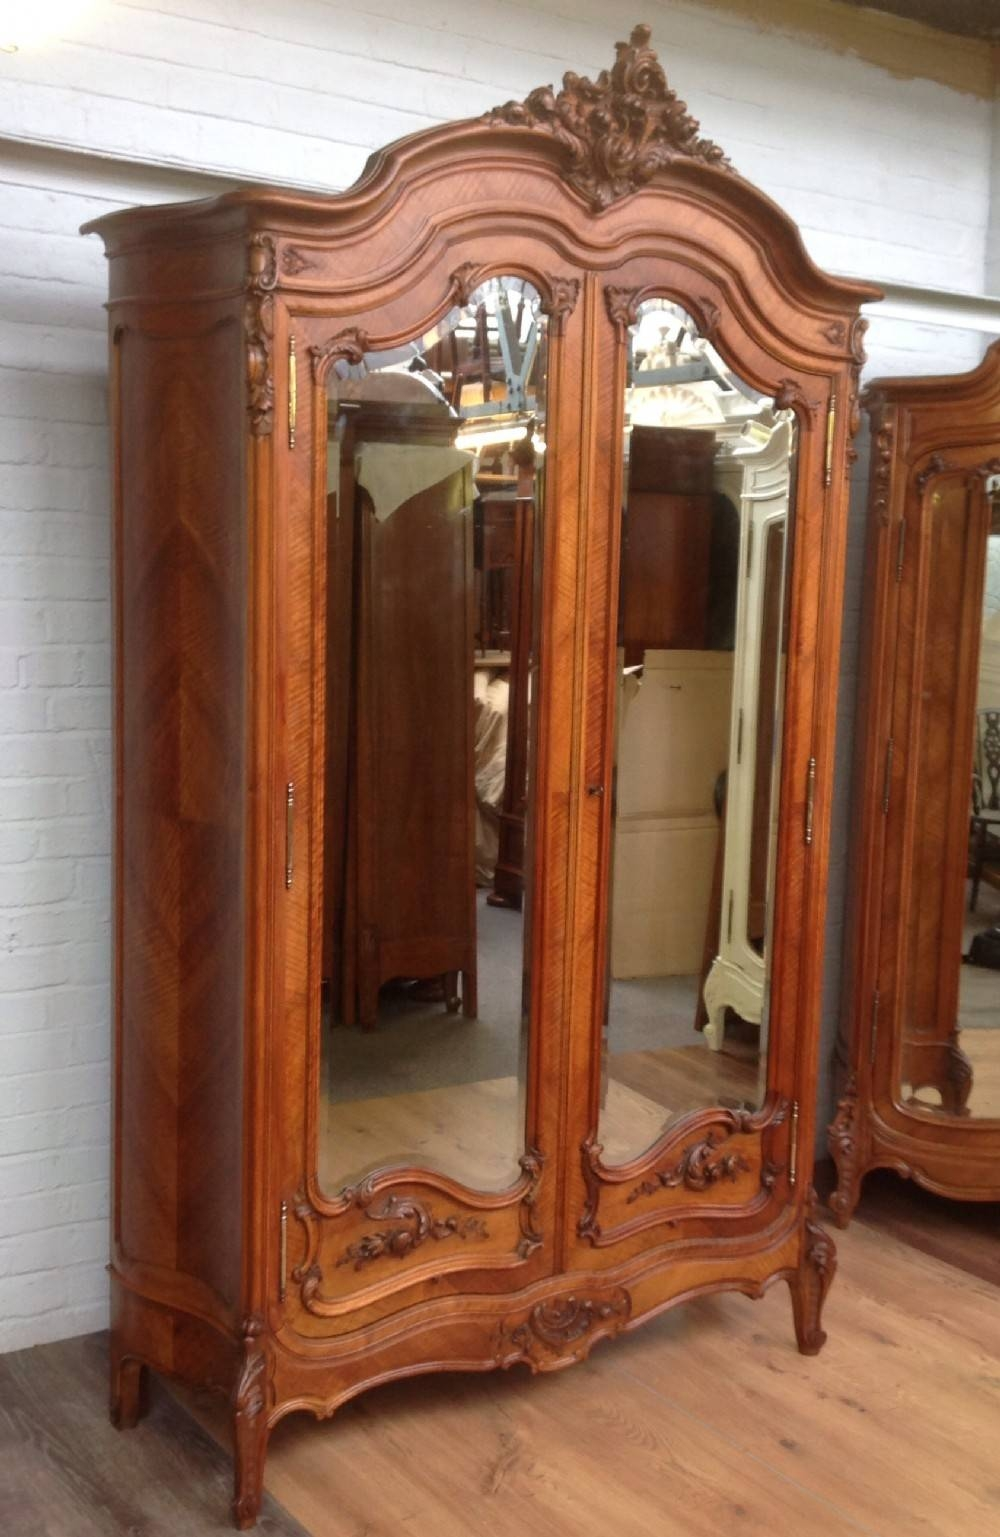 Antique French Walnut Armoire With Carved Doors. | 287475 in Antique French Wardrobes (Image 3 of 15)